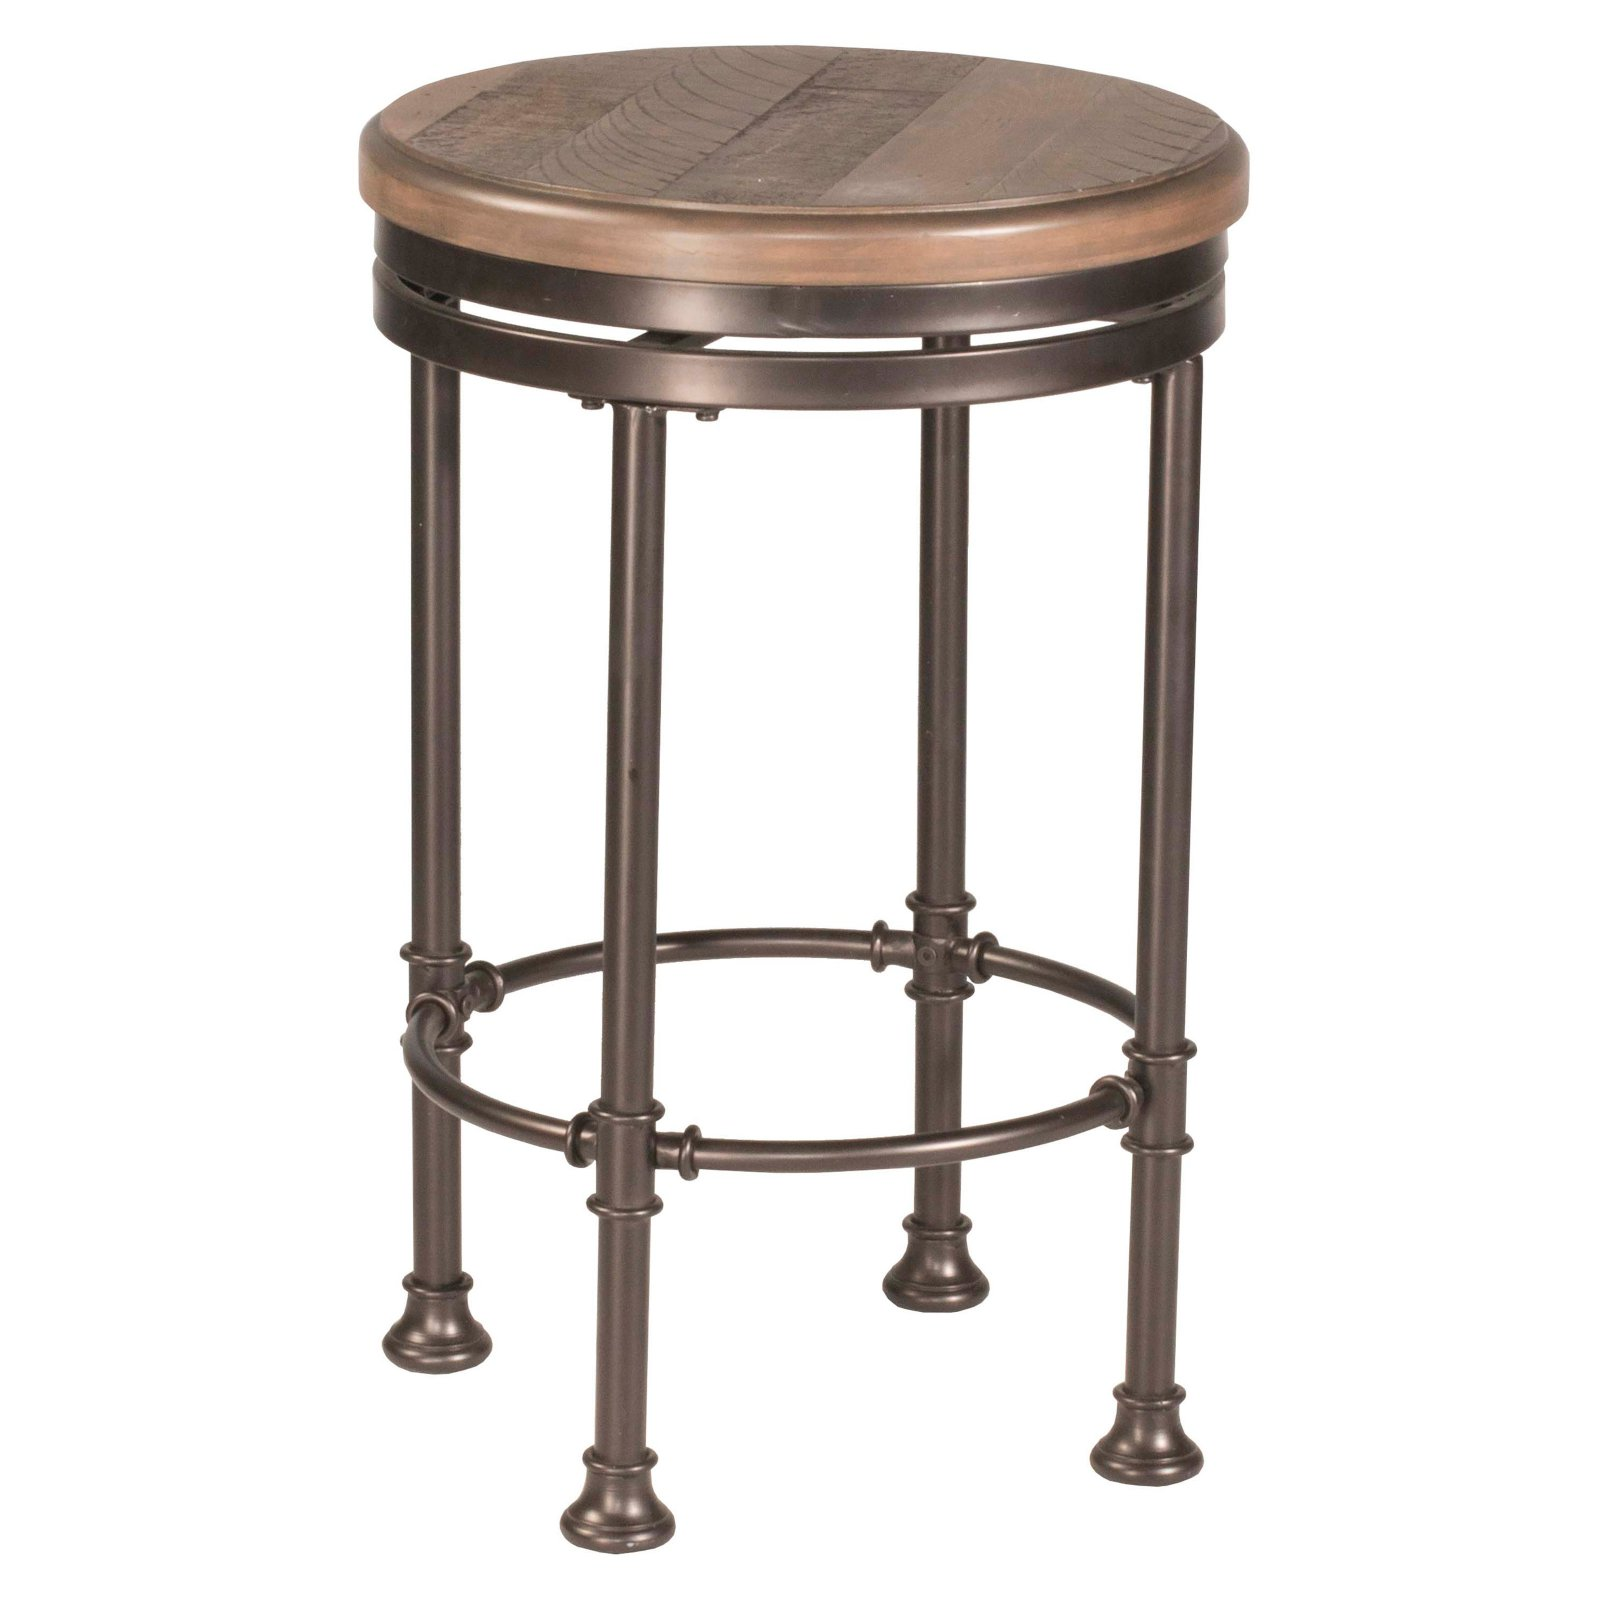 Stupendous Hillsdale Casselberry Swivel Backless Round Counter Stool Pabps2019 Chair Design Images Pabps2019Com